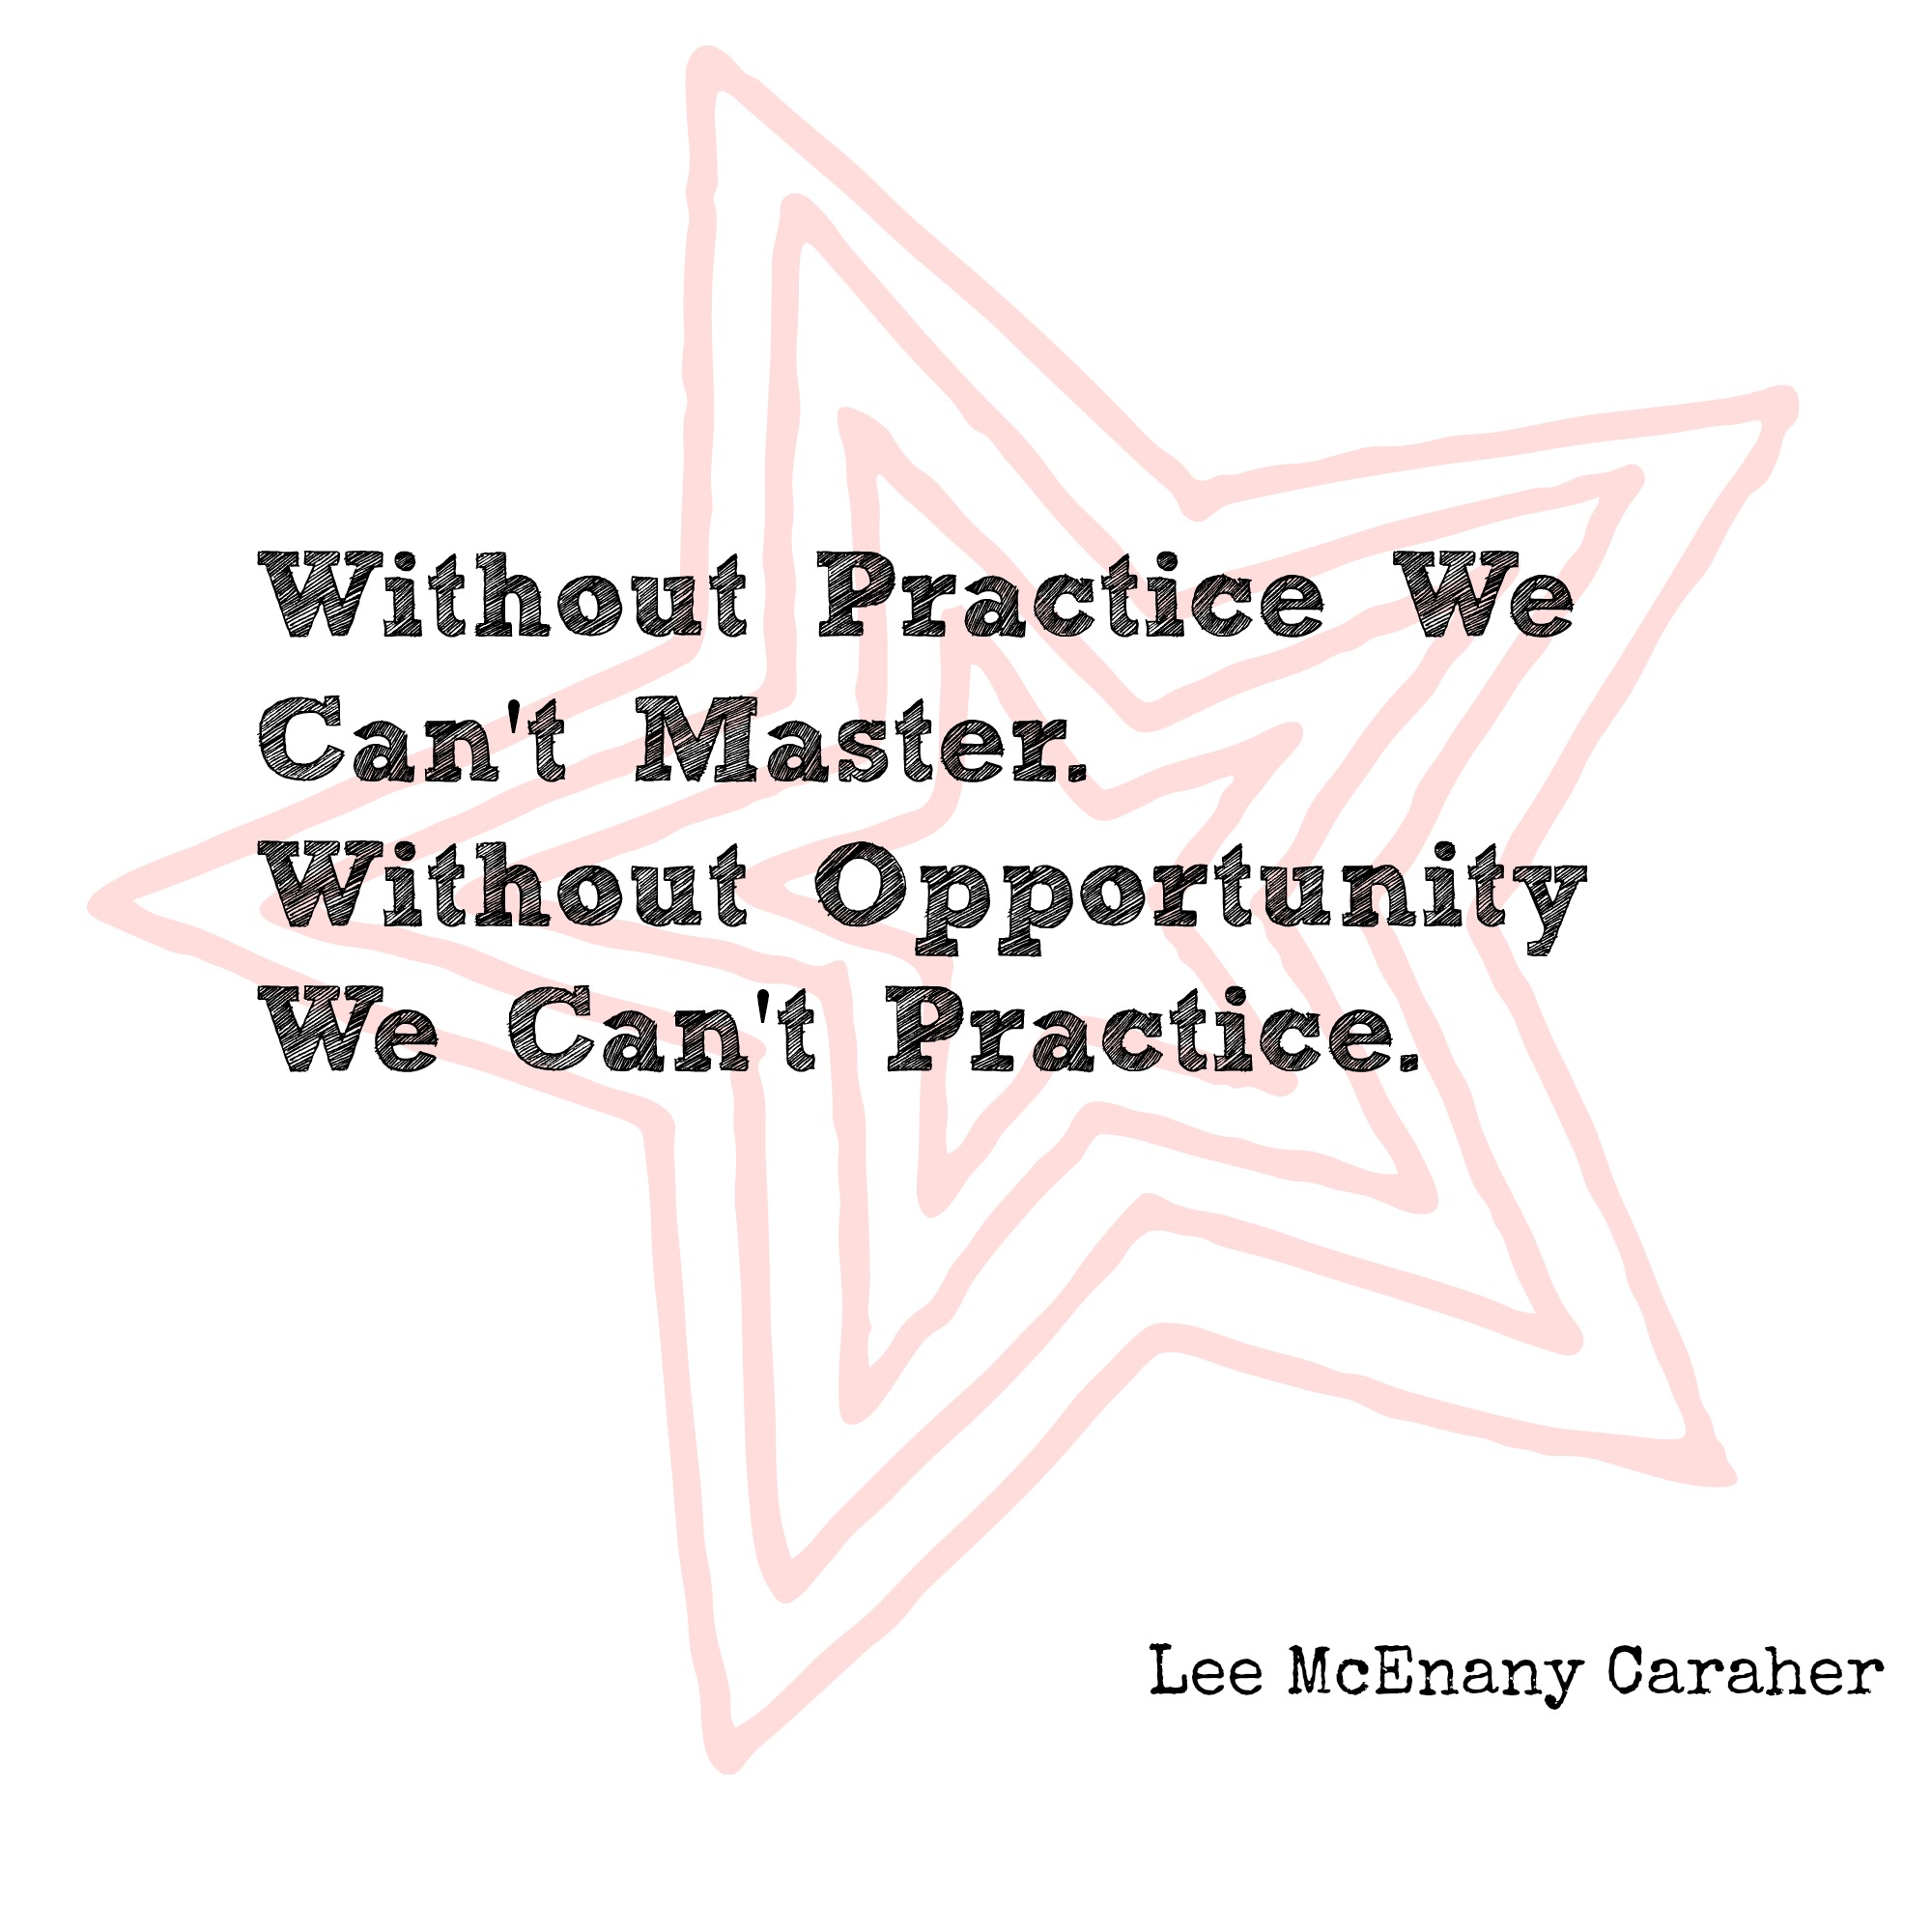 Without Practice We Can't Master